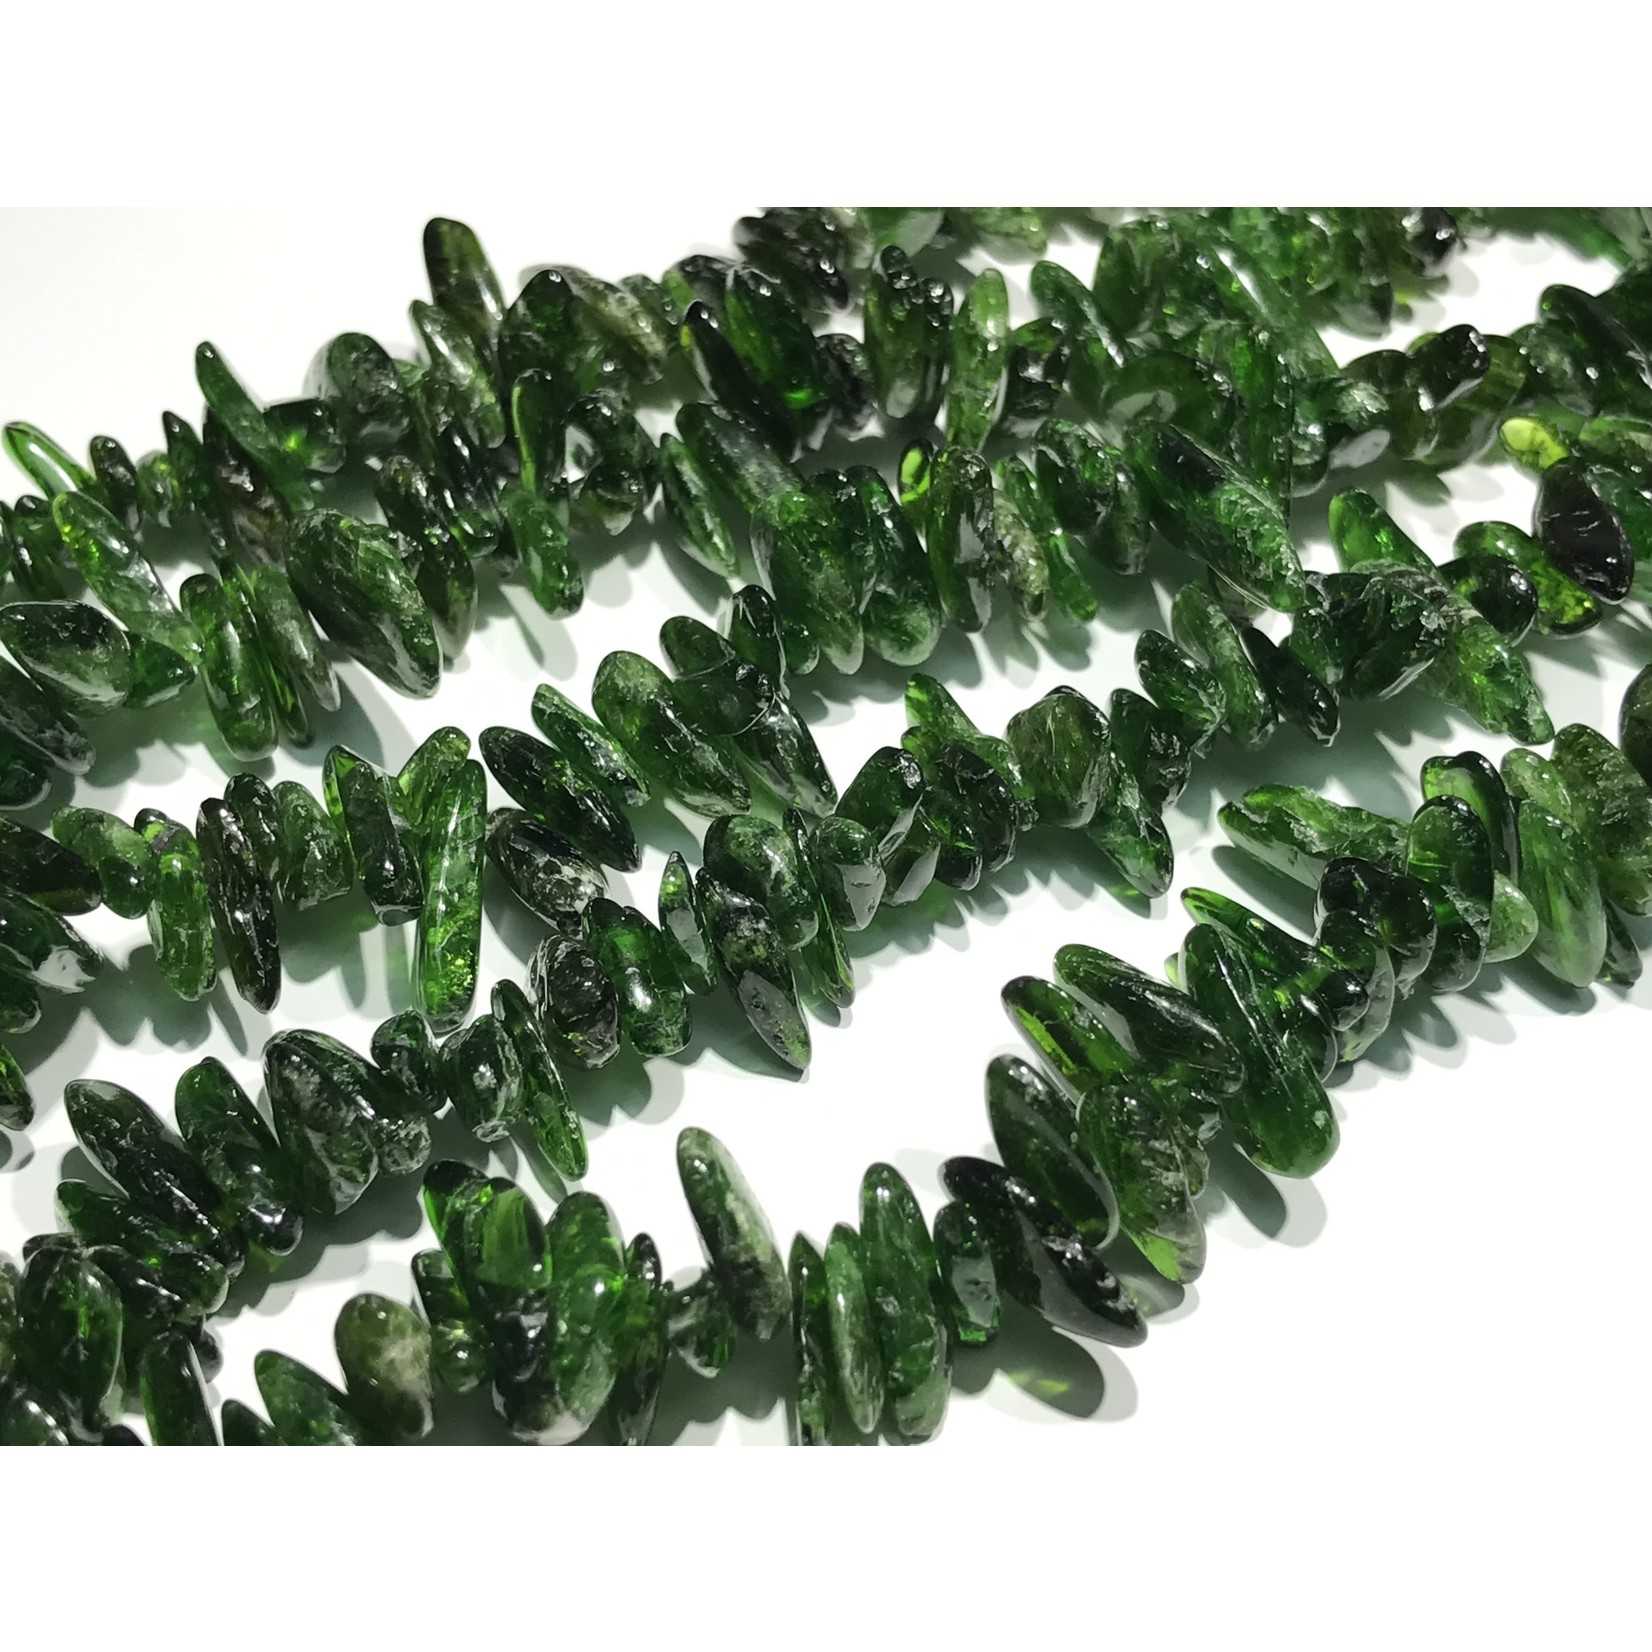 Chrome Diopside Grade B 8-15mm Chip Beads